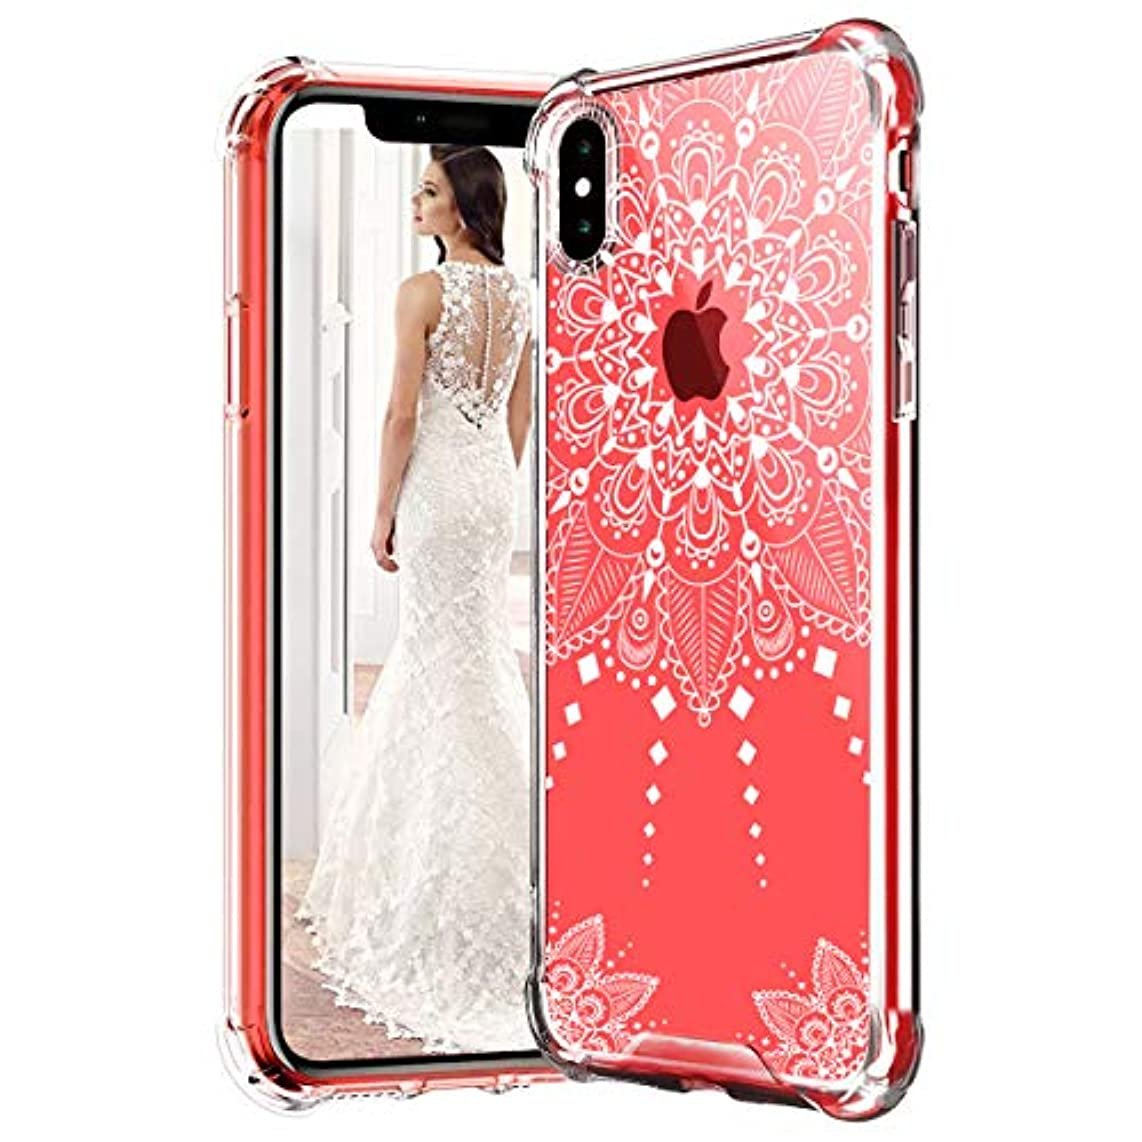 AXAYINC Case for iPhone Xs MAX(6.5) Inch,Mandala Floral Lace Clear Design Printed Transparent Hard Case Shock Absorption Technology Bumper TPU Cover Case for iPhoneXS MAX(6.5) Inch (XS MAX(6.5inch))